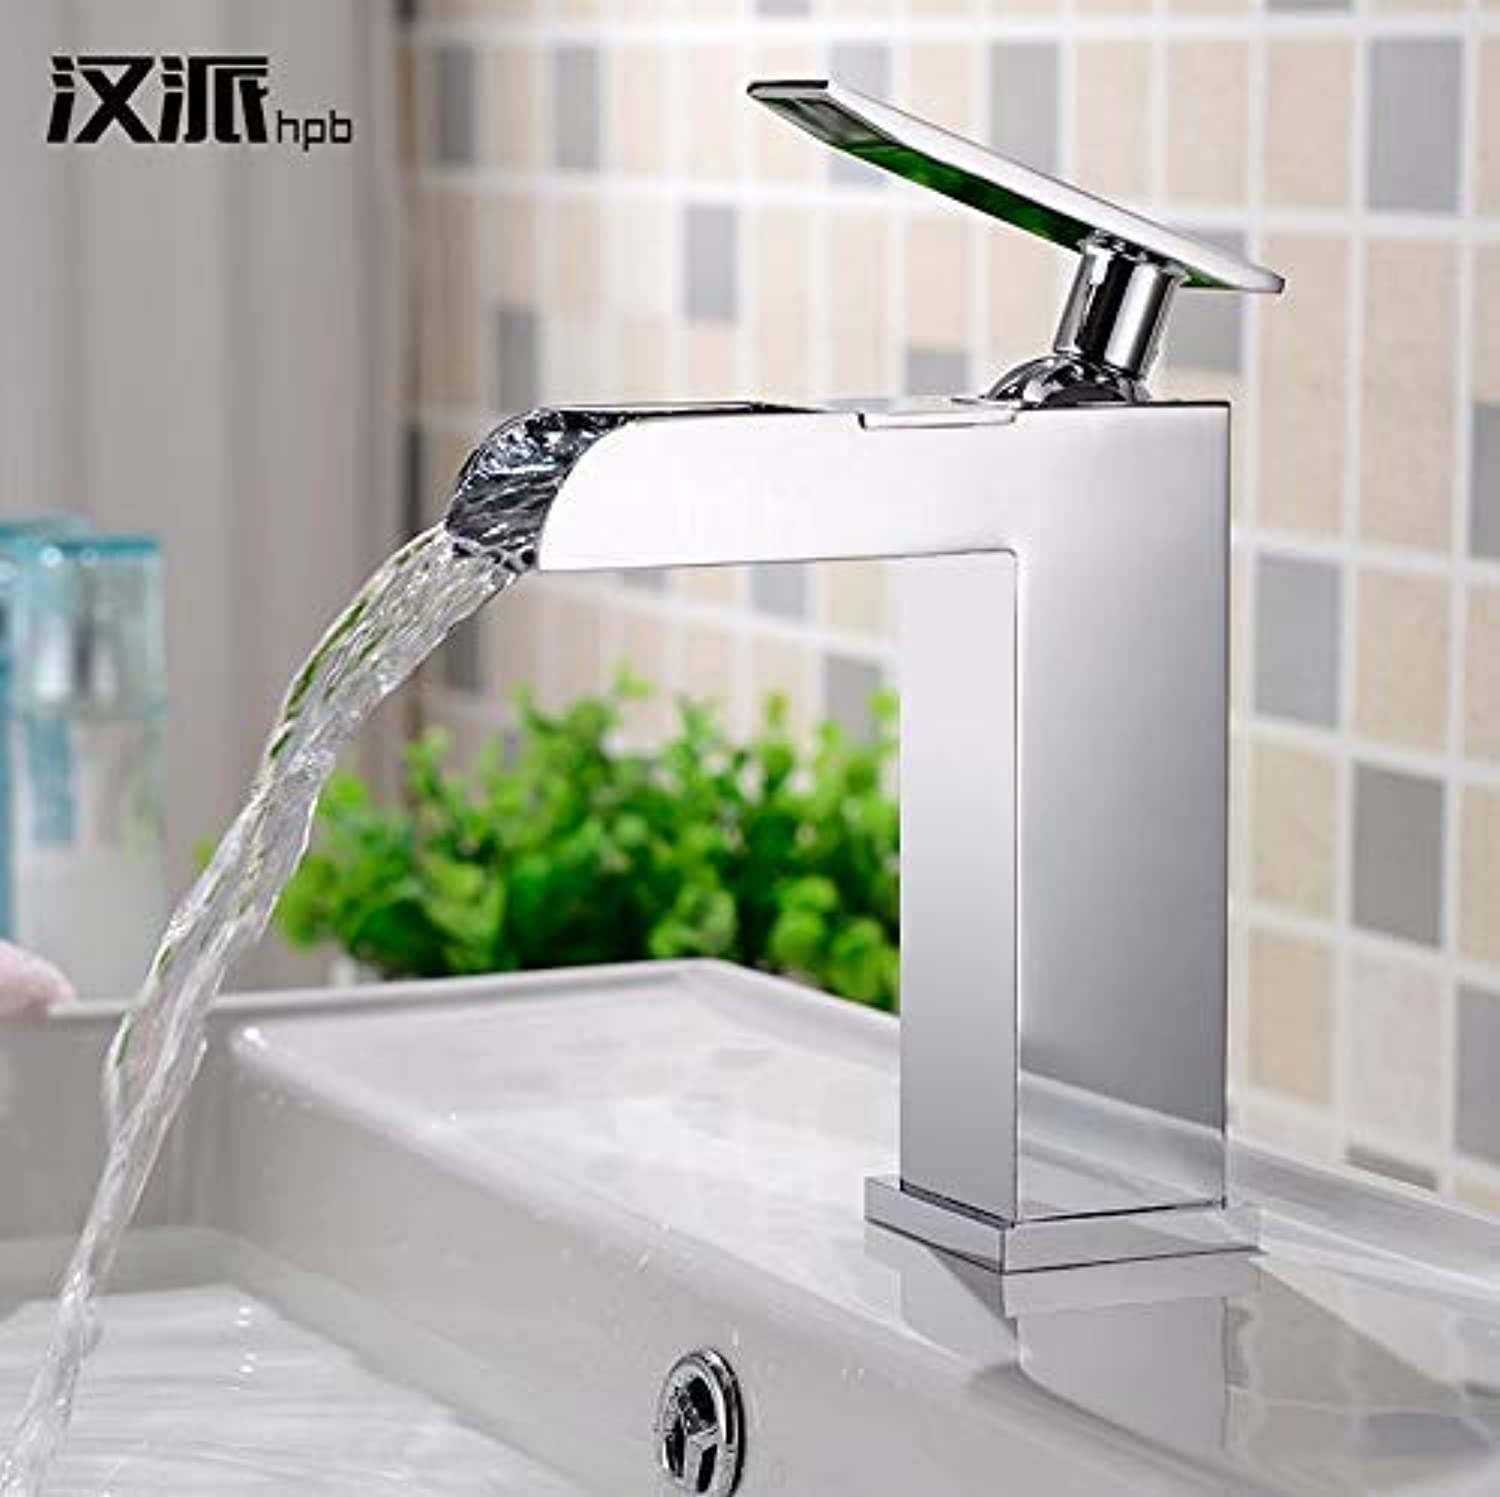 Oudan All Copper Hot and Cold Waterfall Basin Faucet Heightening Platform Basin Artistic Basin Wash Basin Basin Taps, High Money Hp3116 (color   Low Section Hp3016, Size   -)